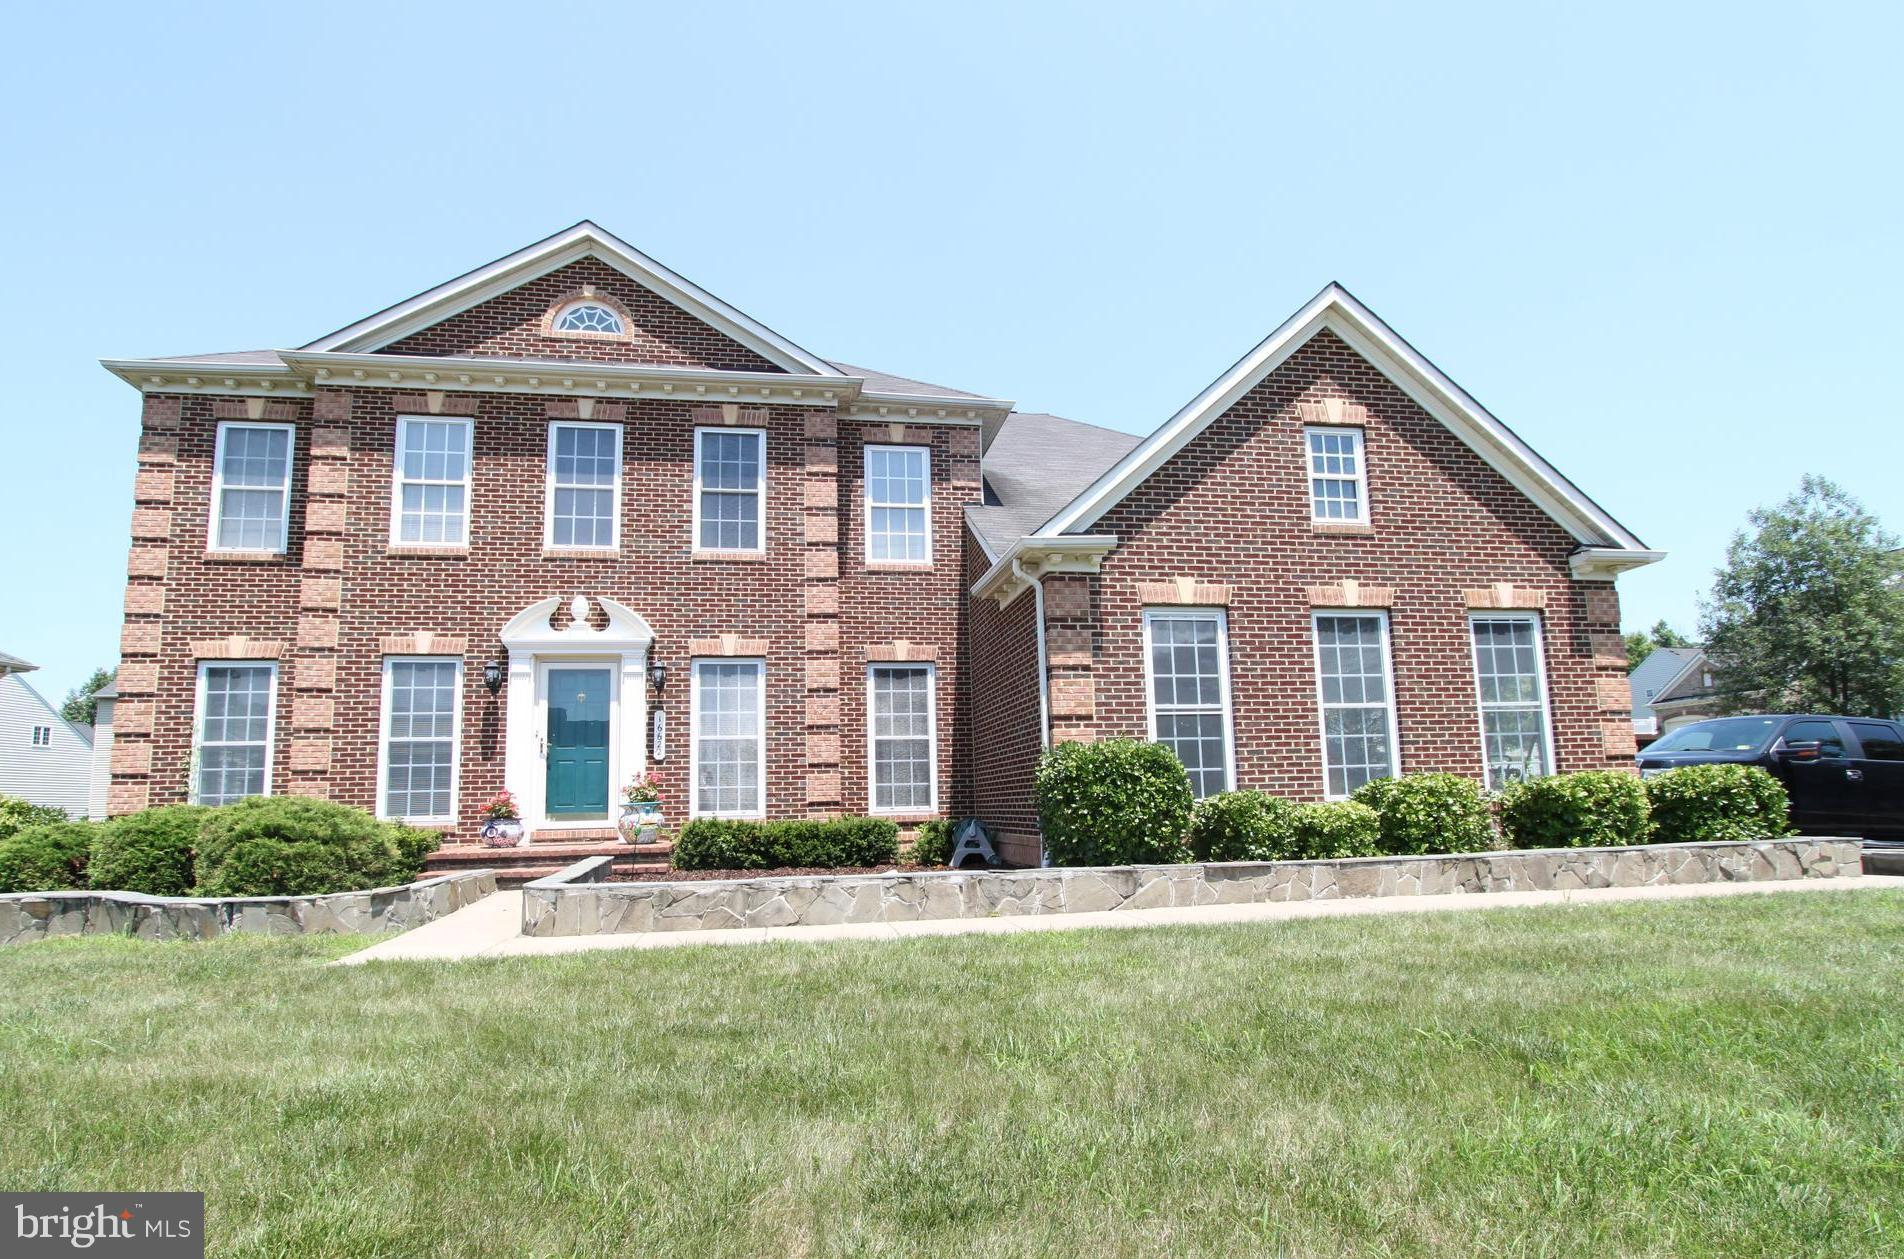 Just reduced! Great deal on this grand brick front colonial w/ side load garage. Welcoming entry w/ formal areas greet you. Cherry hardwoods on upper levels. Gorgeous kitchen w/ all the amenities & large eat-in area opens to family room. Main level guest suite w/ private bath. Huge master suite w/ awesome bath, tray ceiling, sitting area & W/I closet. Finished walkout lower lvl w/ media area, den/office & tons of space + storage.